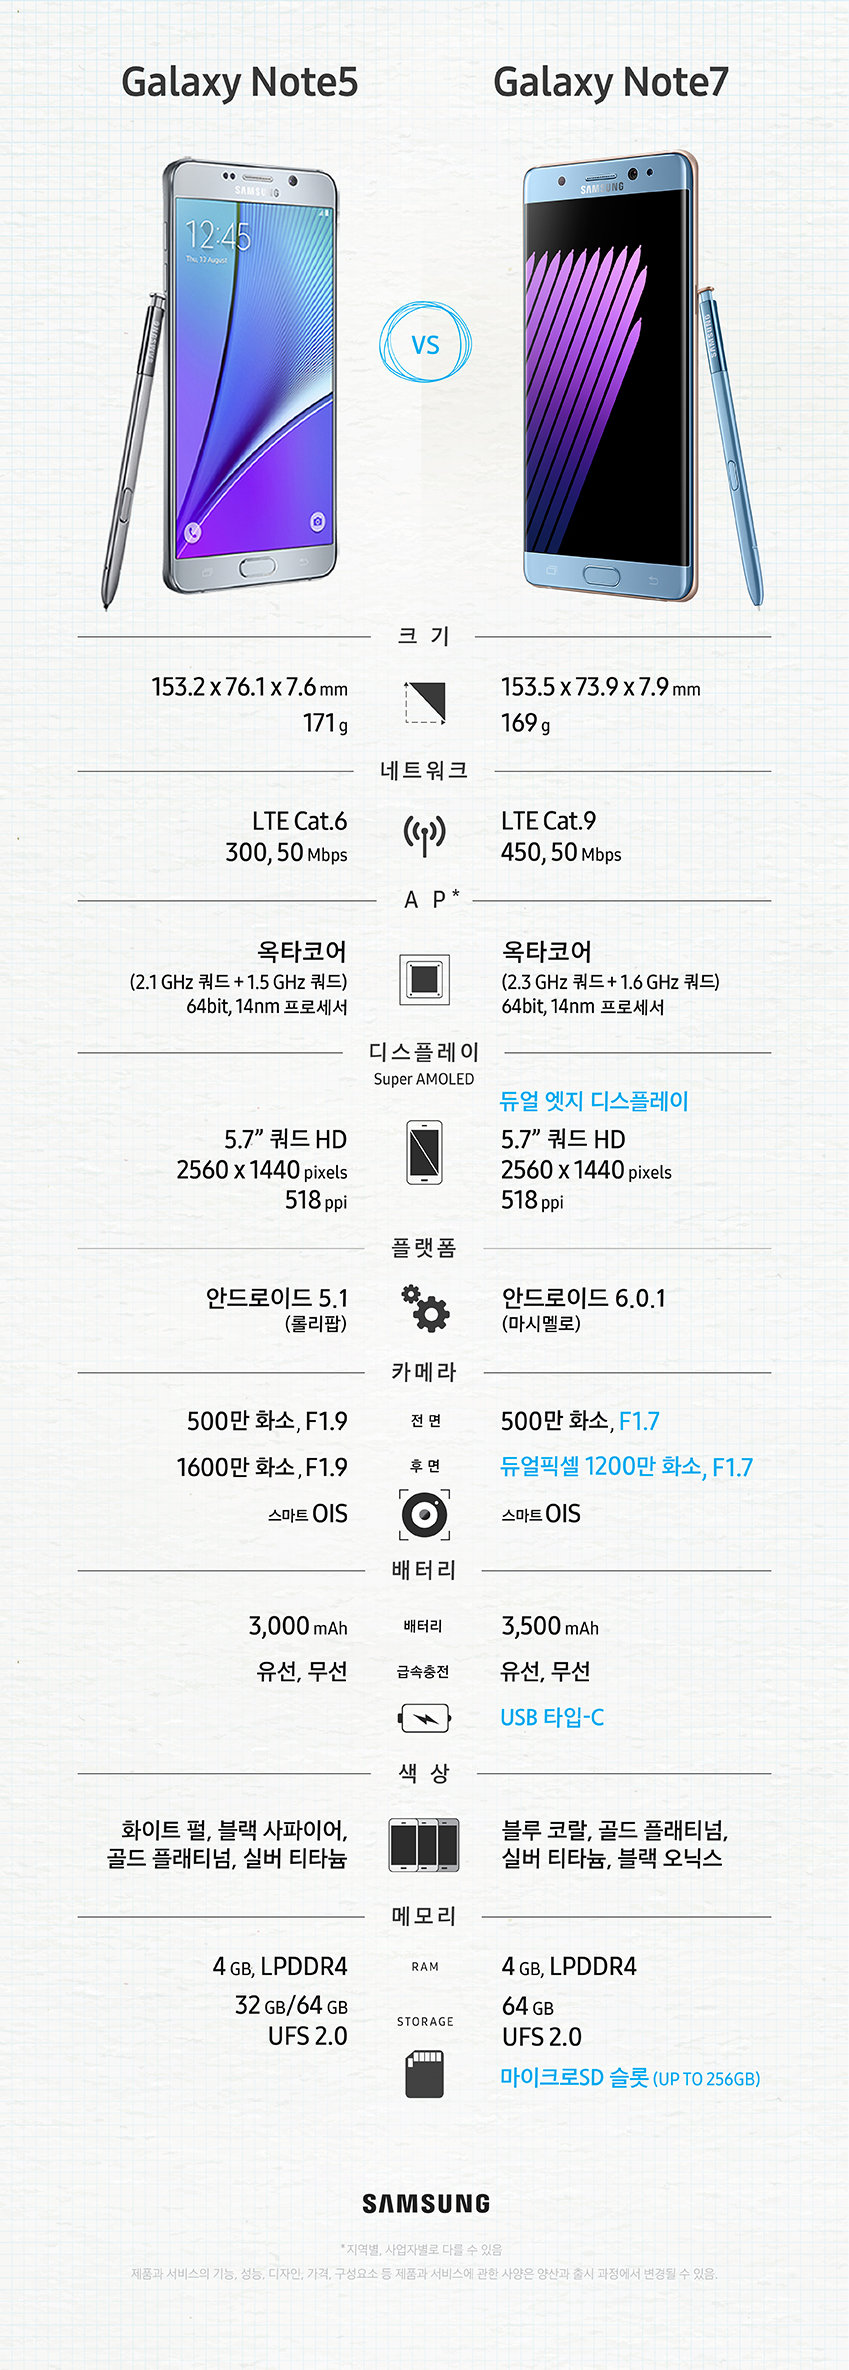 Note 5 & s7 Note 7 Comparison_kr_0728